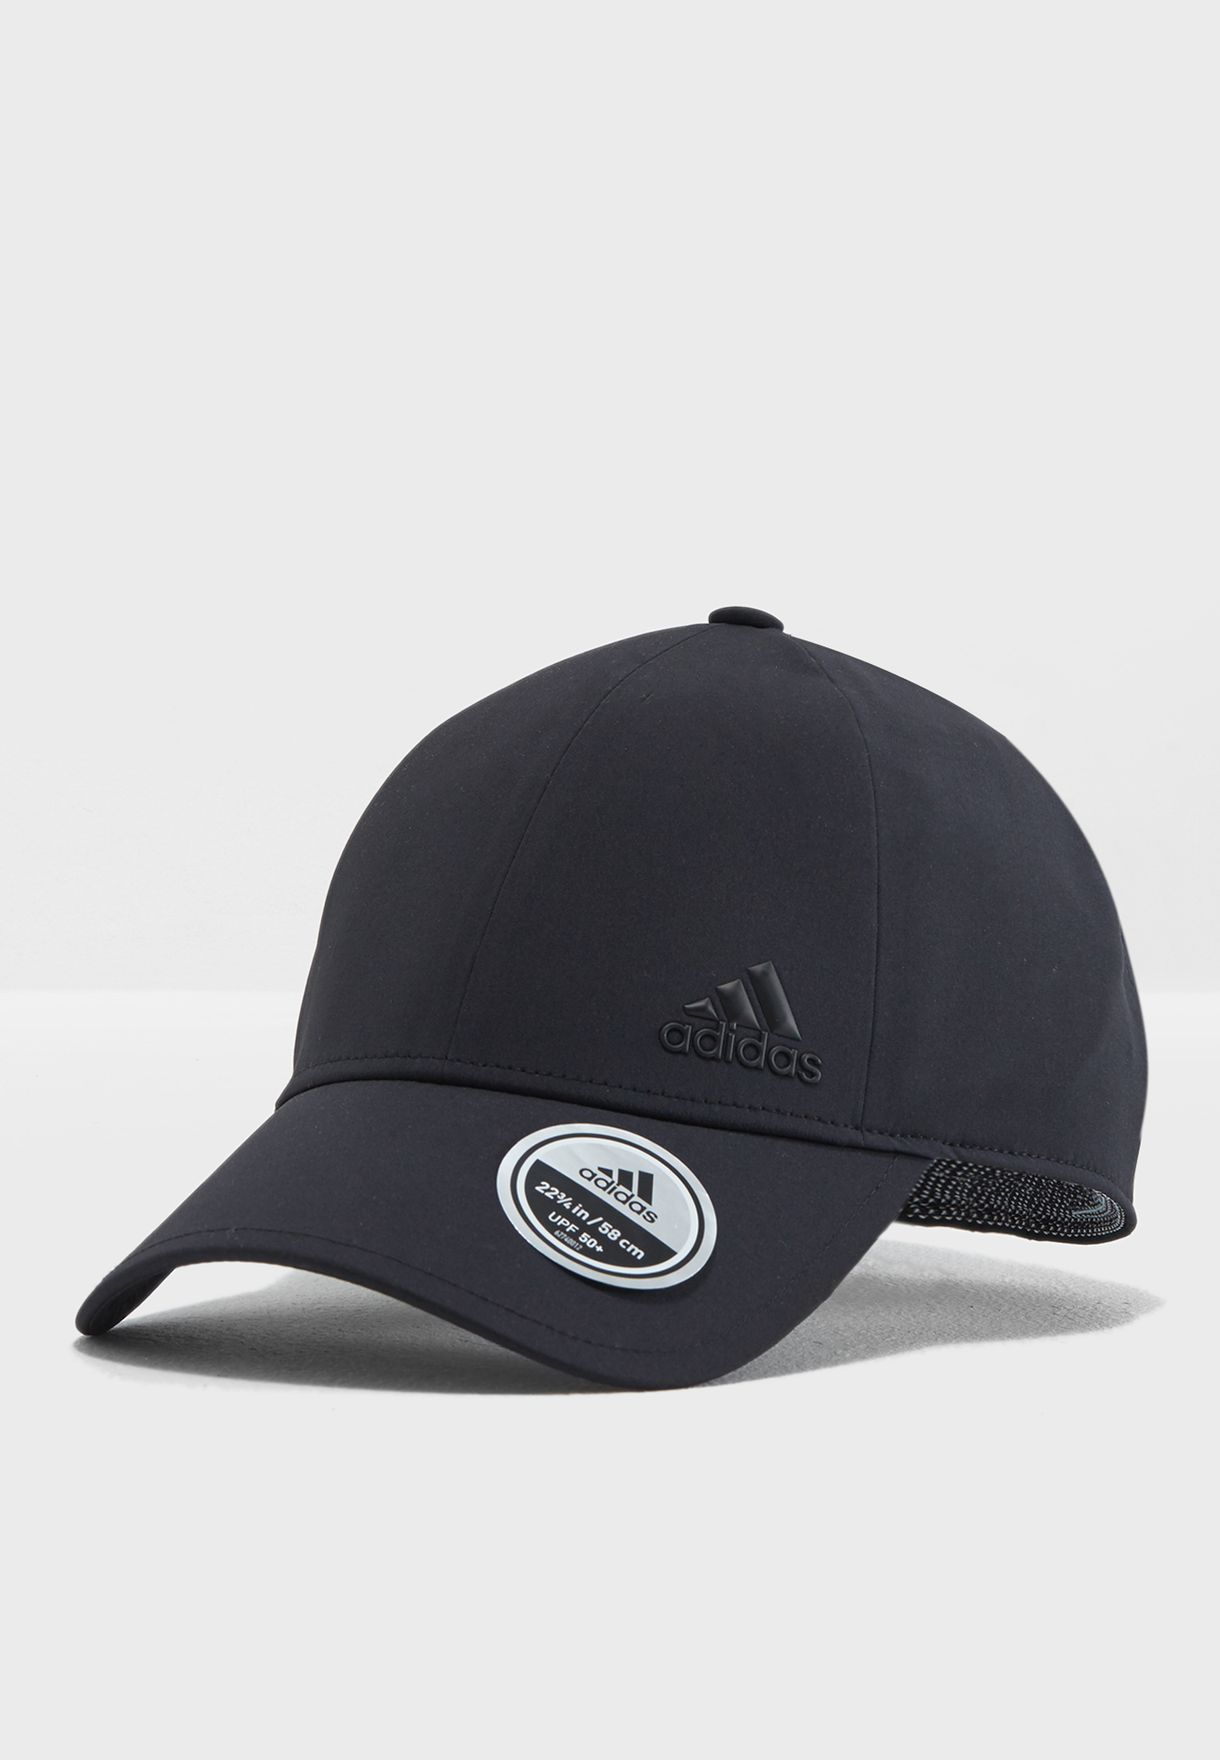 649a5ad891a4 Shop adidas black Bonded Logo Cap S97588 for Men in Kuwait ...